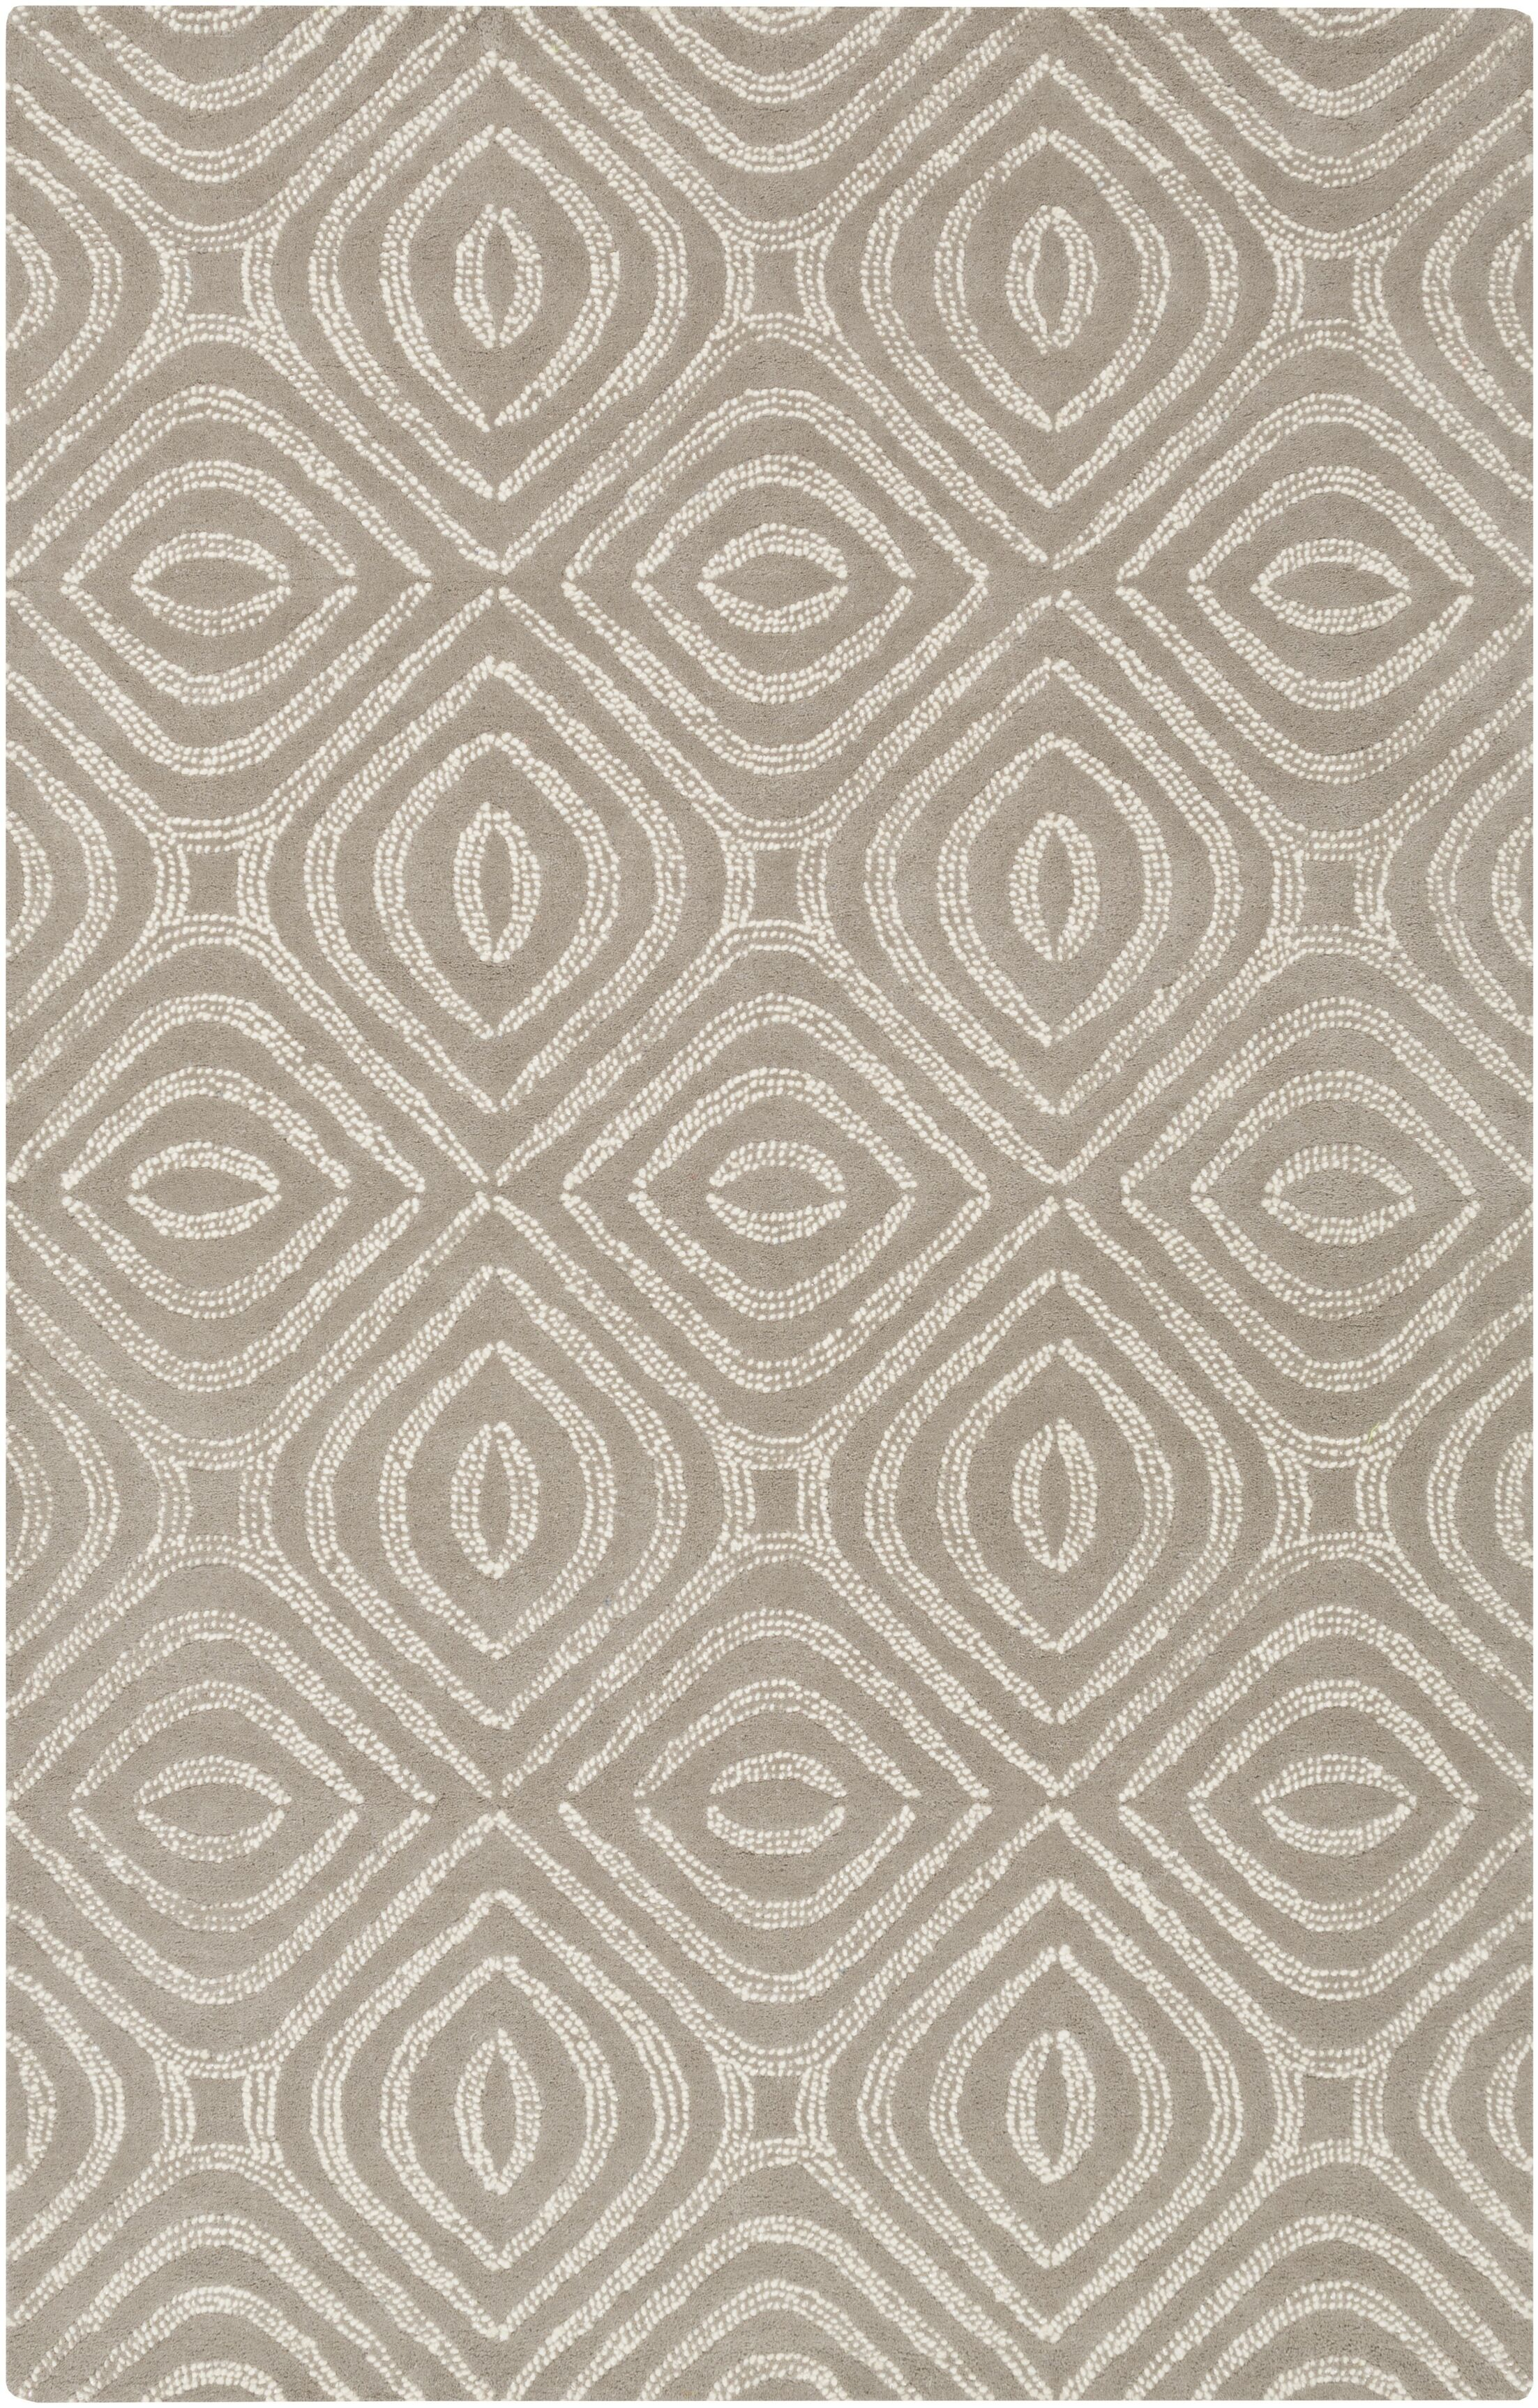 Rosa Hand-Tufted Gray Area Rug Rug Size: Rectangle 3' x 5'